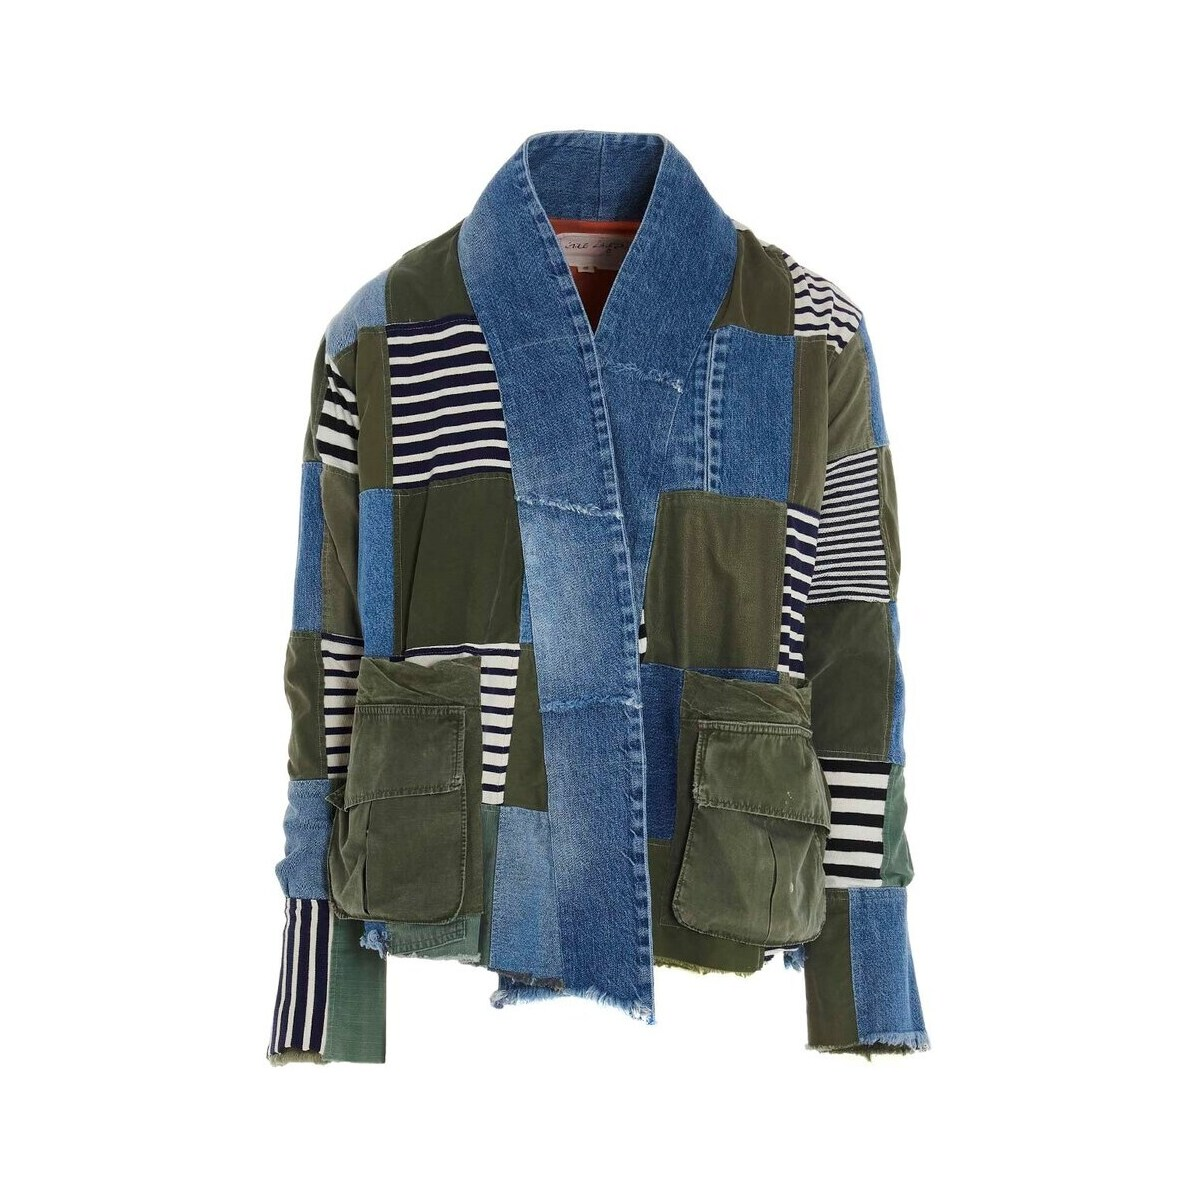 メンズファッション, コート・ジャケット GREG LAUREN Multicolor ArmyDenim Striped Scrapwork blazer jacket 2021 BM130ARMYBLUE ju